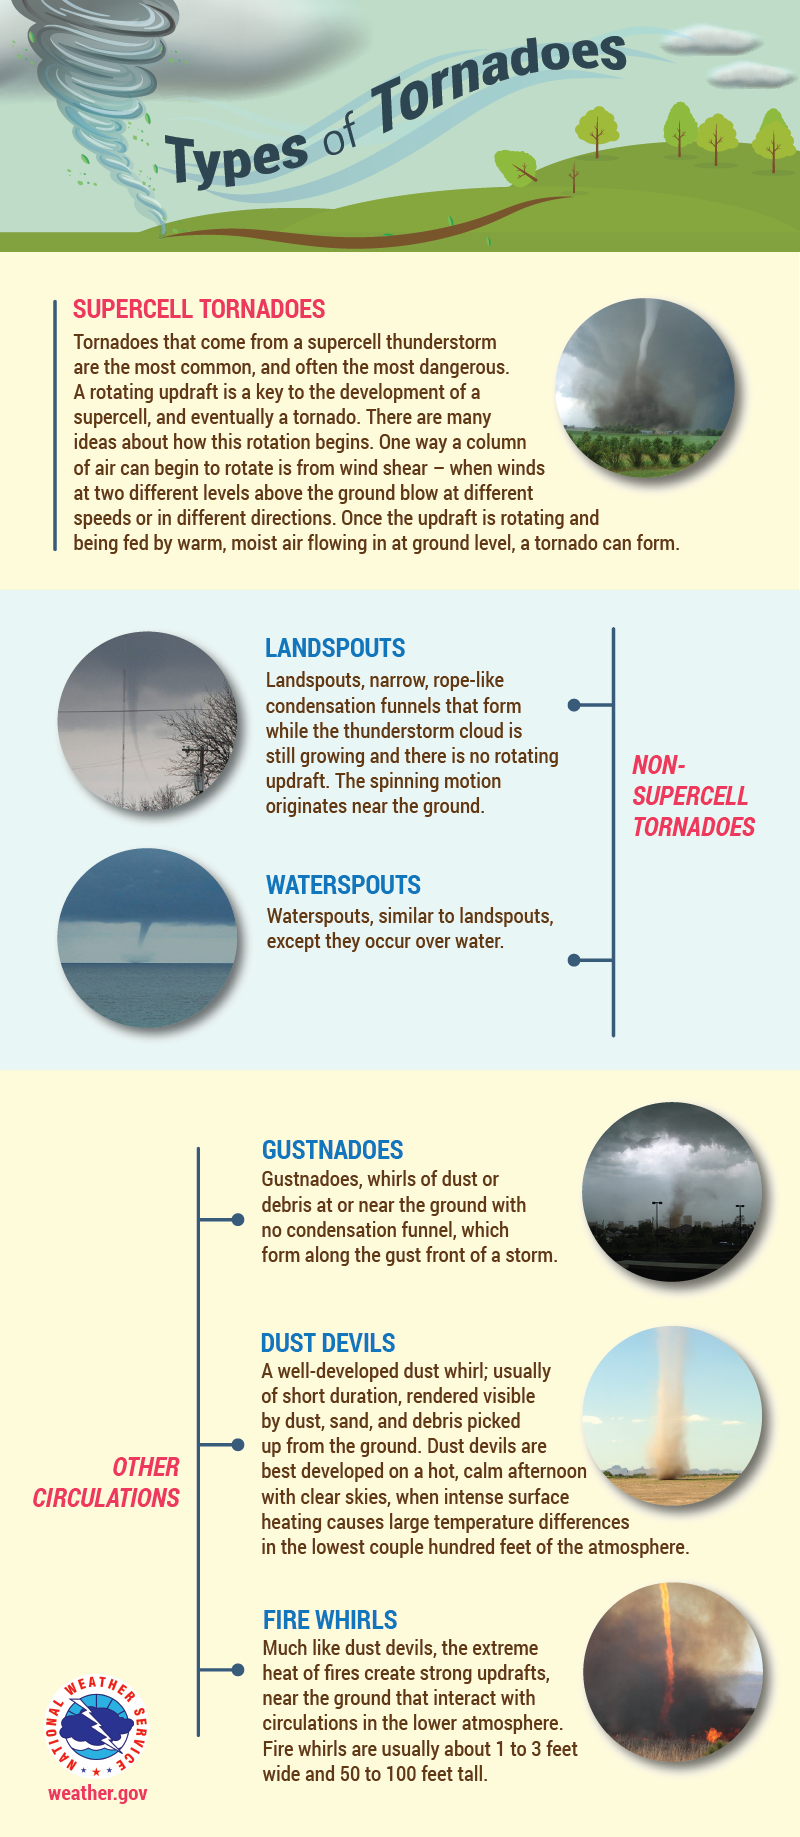 Types of Tornadoes